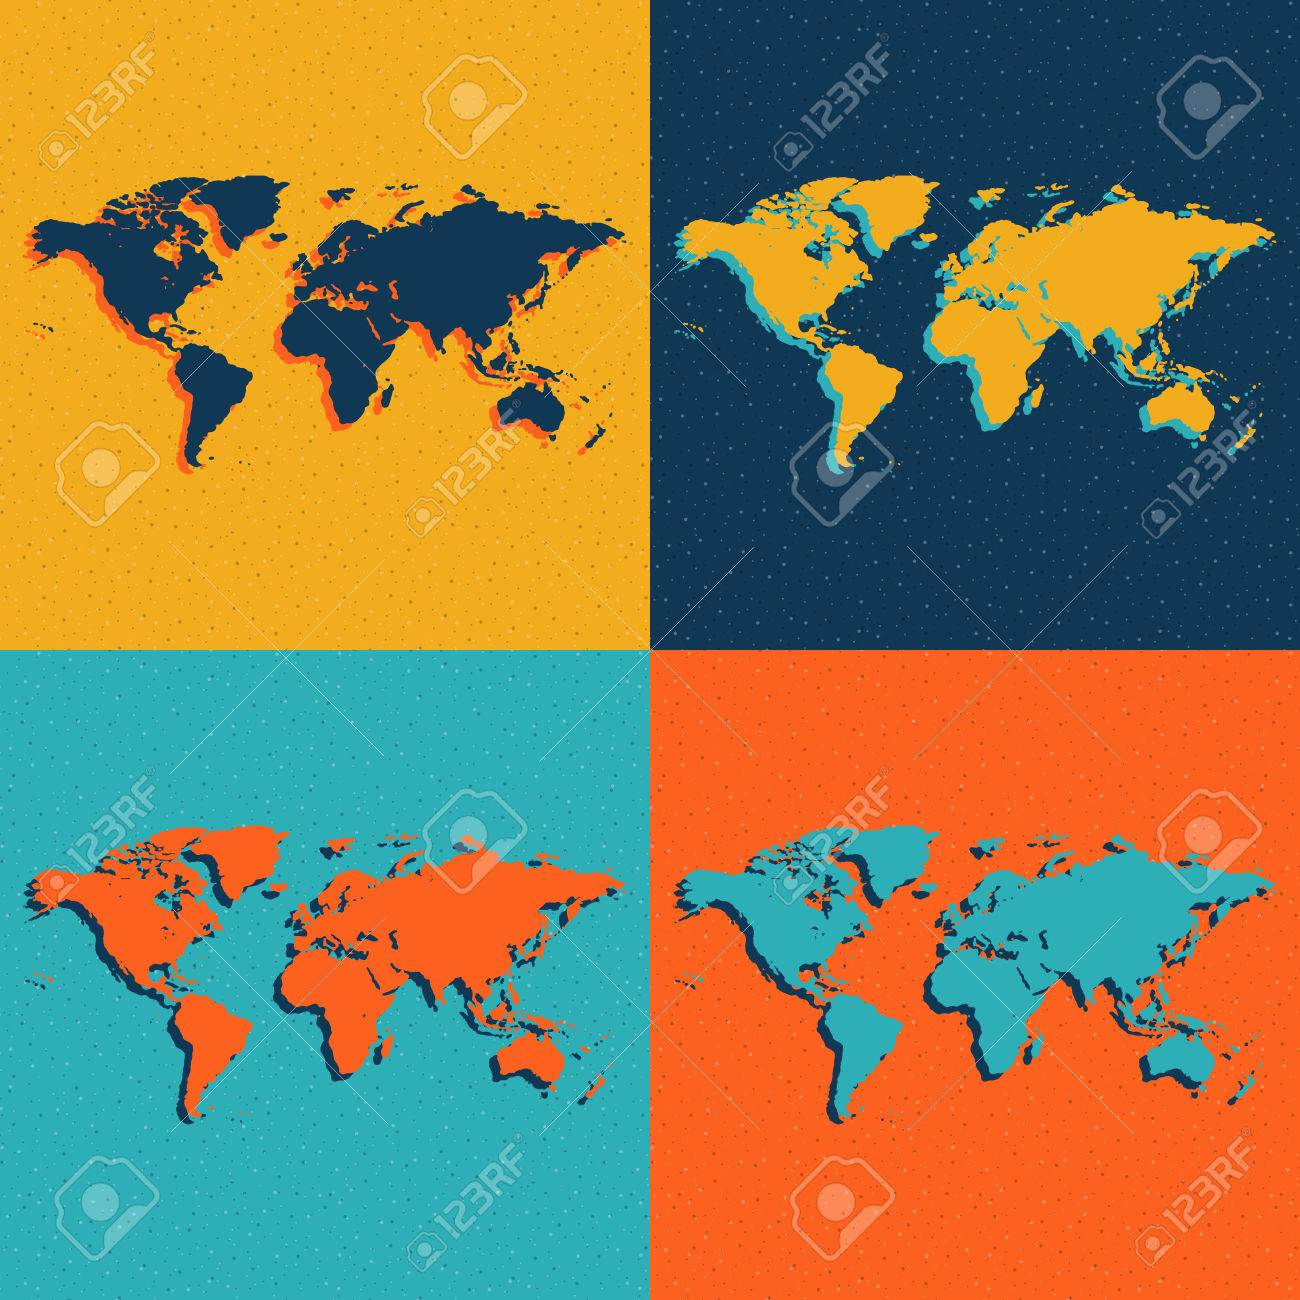 Color world maps flat style vector eps illustration royalty free color world maps flat style vector eps illustration stock vector 60534965 gumiabroncs Images